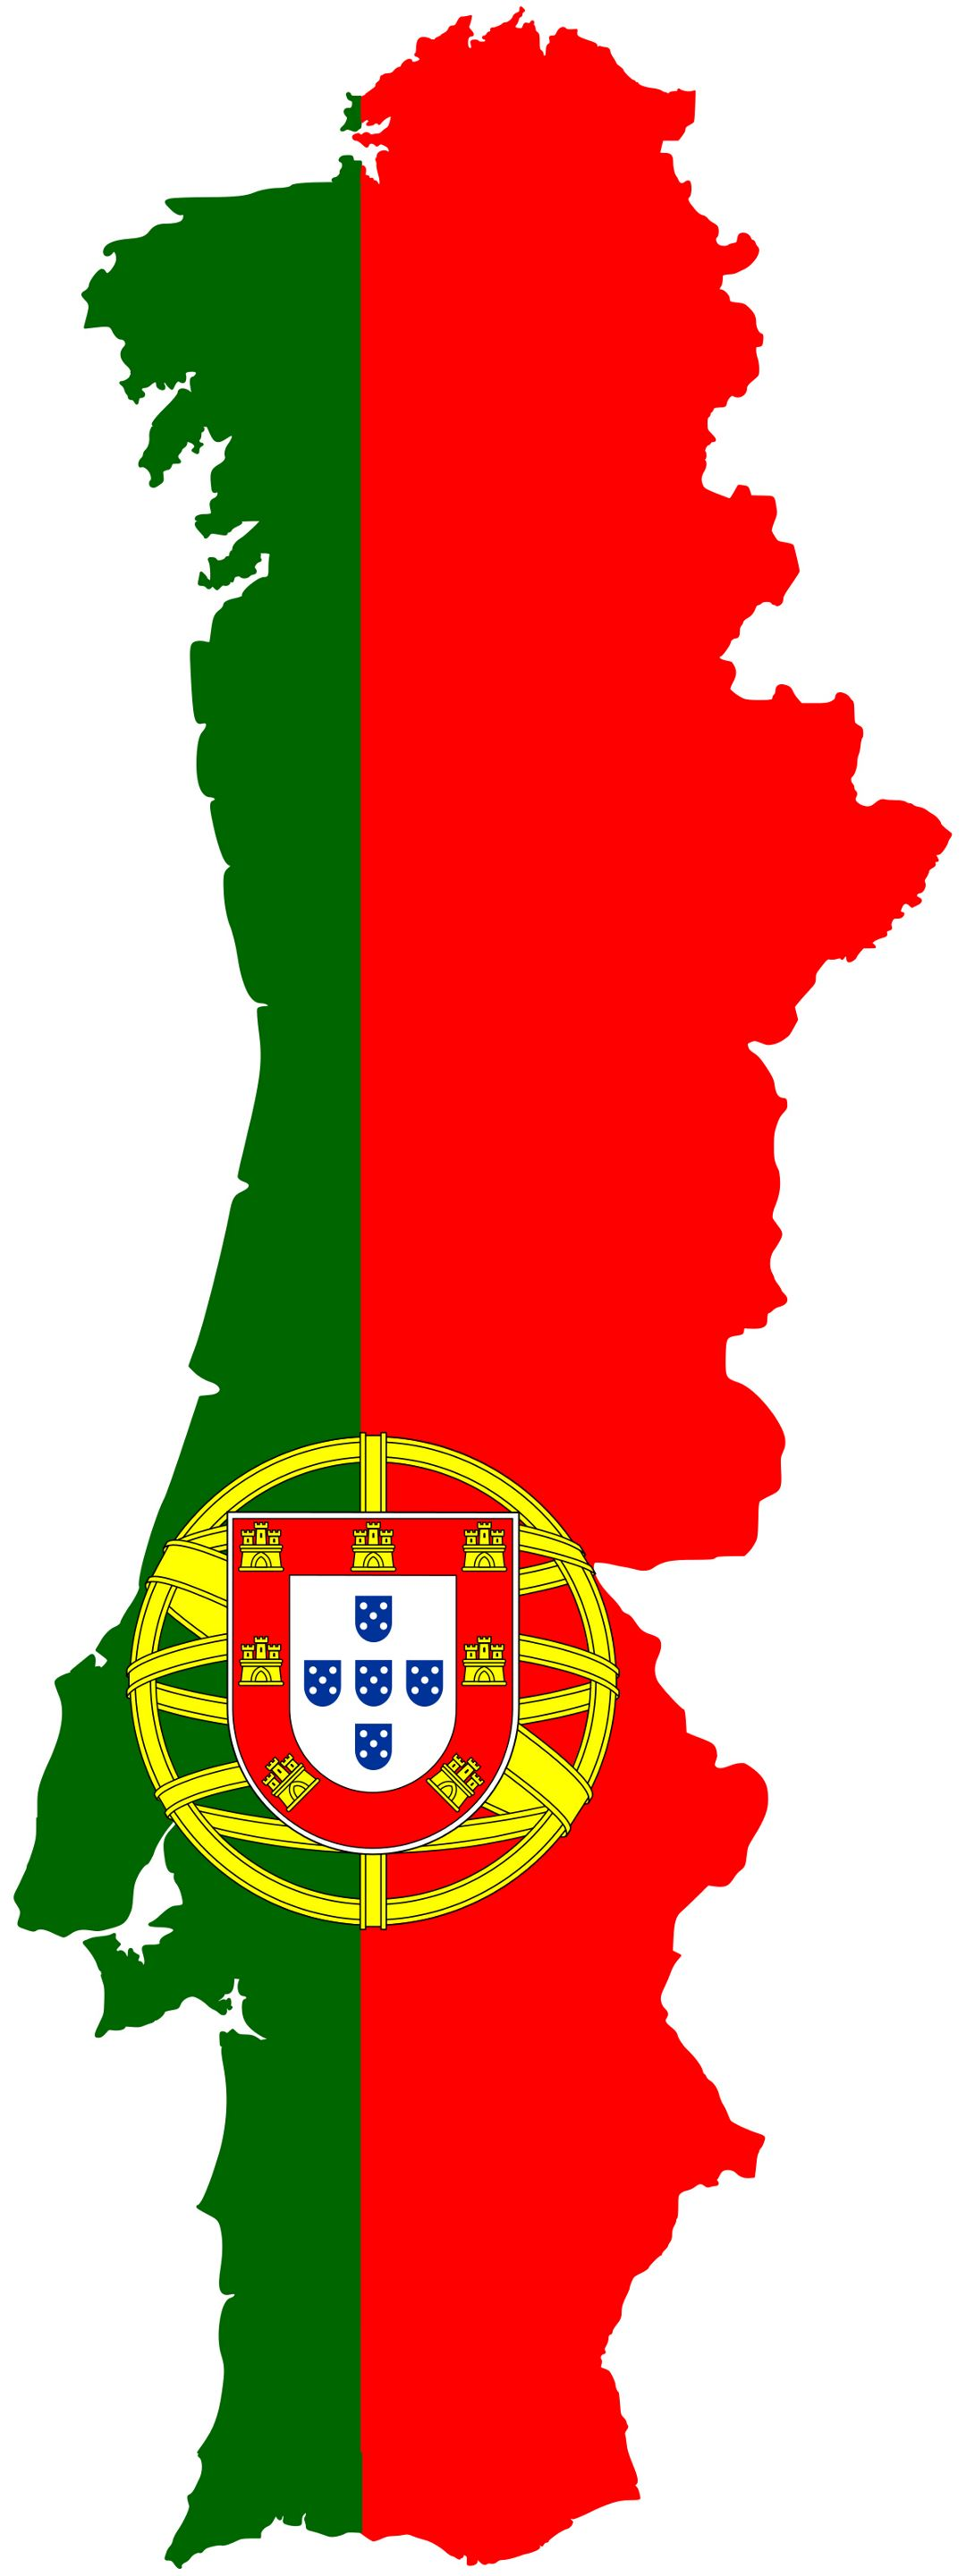 Large flag map of Portugal